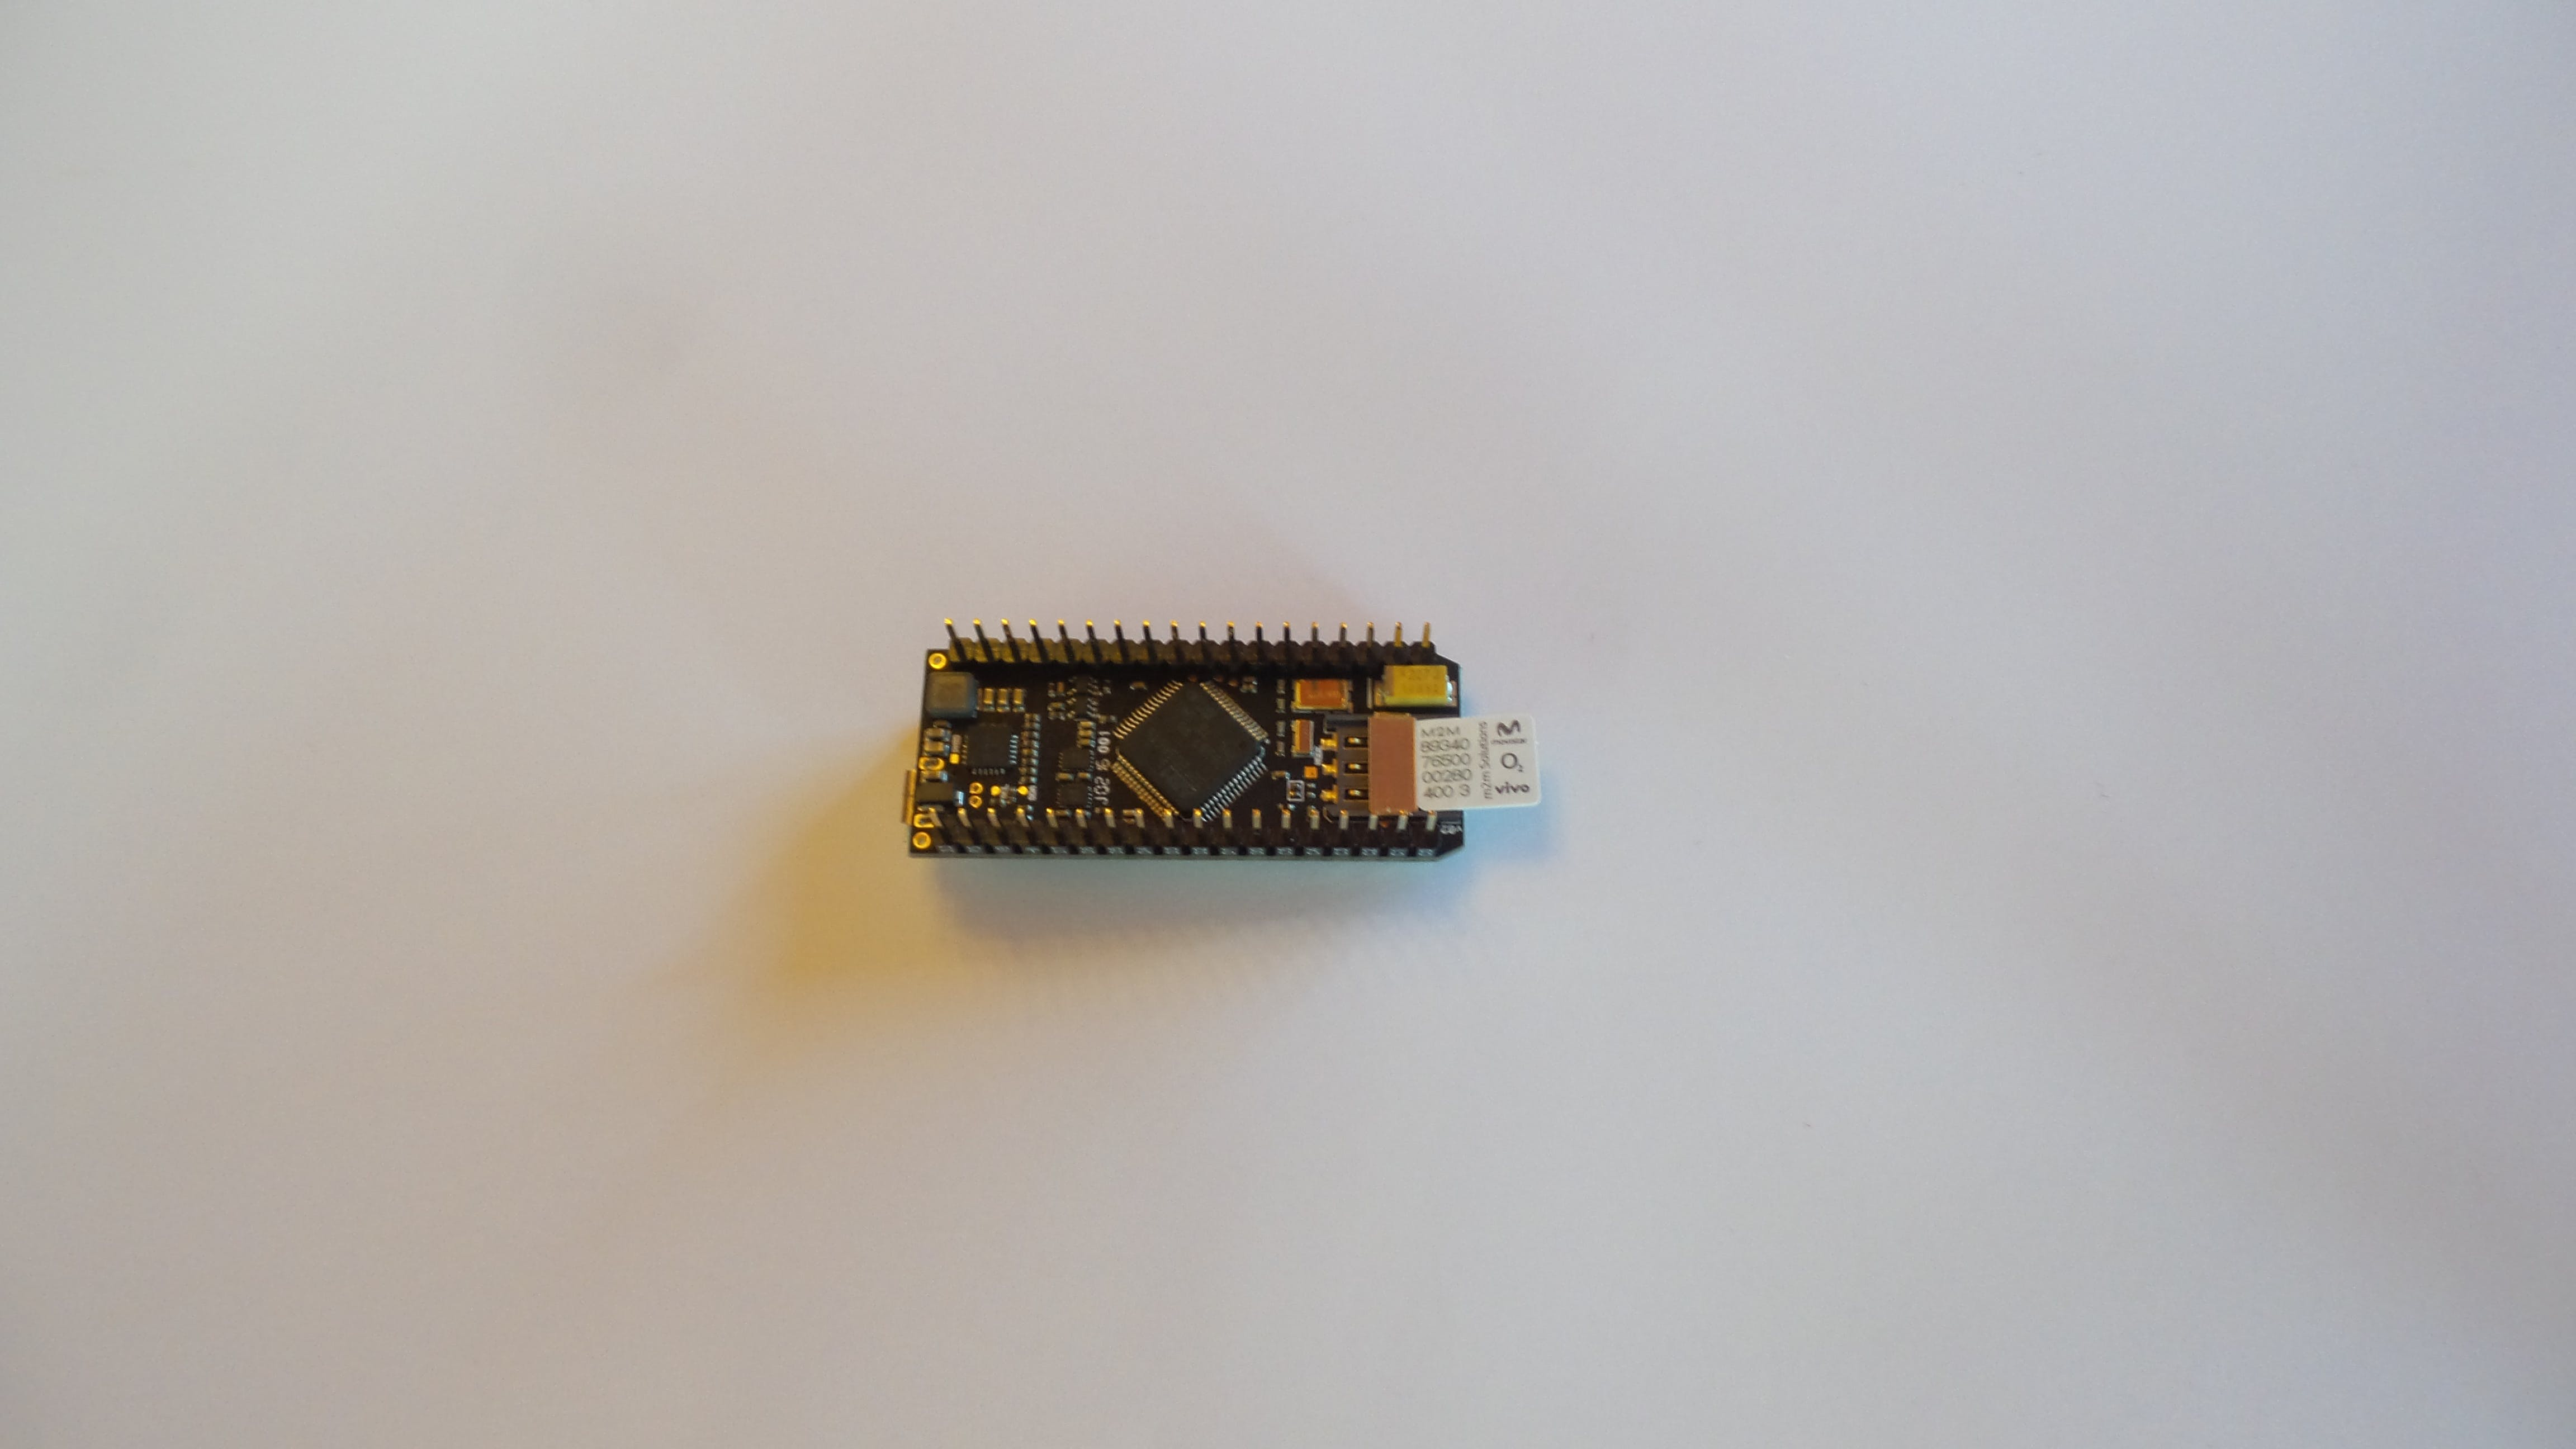 First insert the SIM card (click next to see other photos)